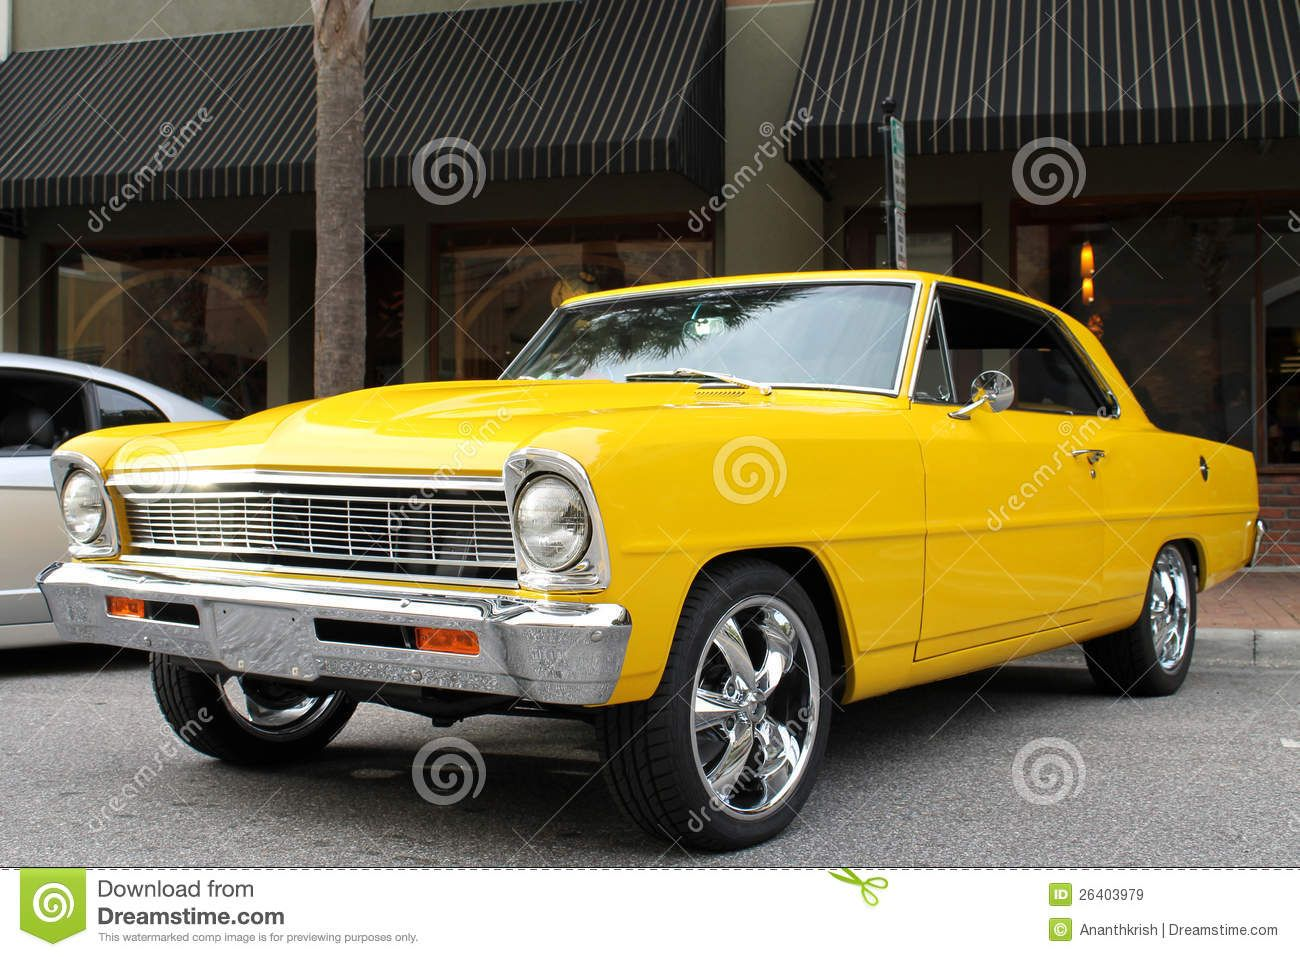 old chevys cars - Google Search | Cars | Pinterest | Cars, Car ...